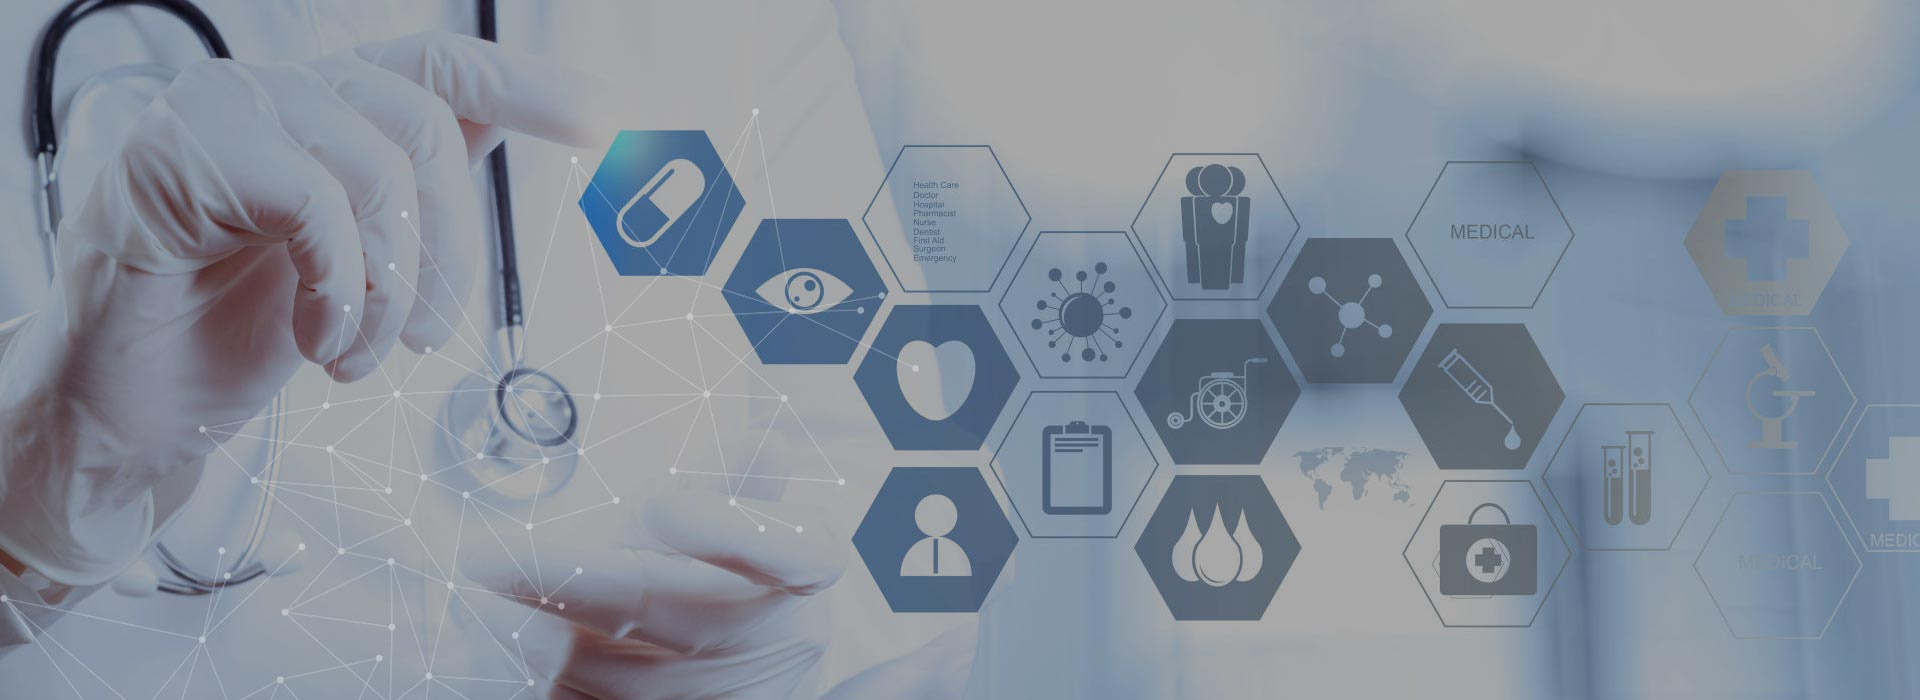 Healthcare Market Research Company   IDS Healthcare Research